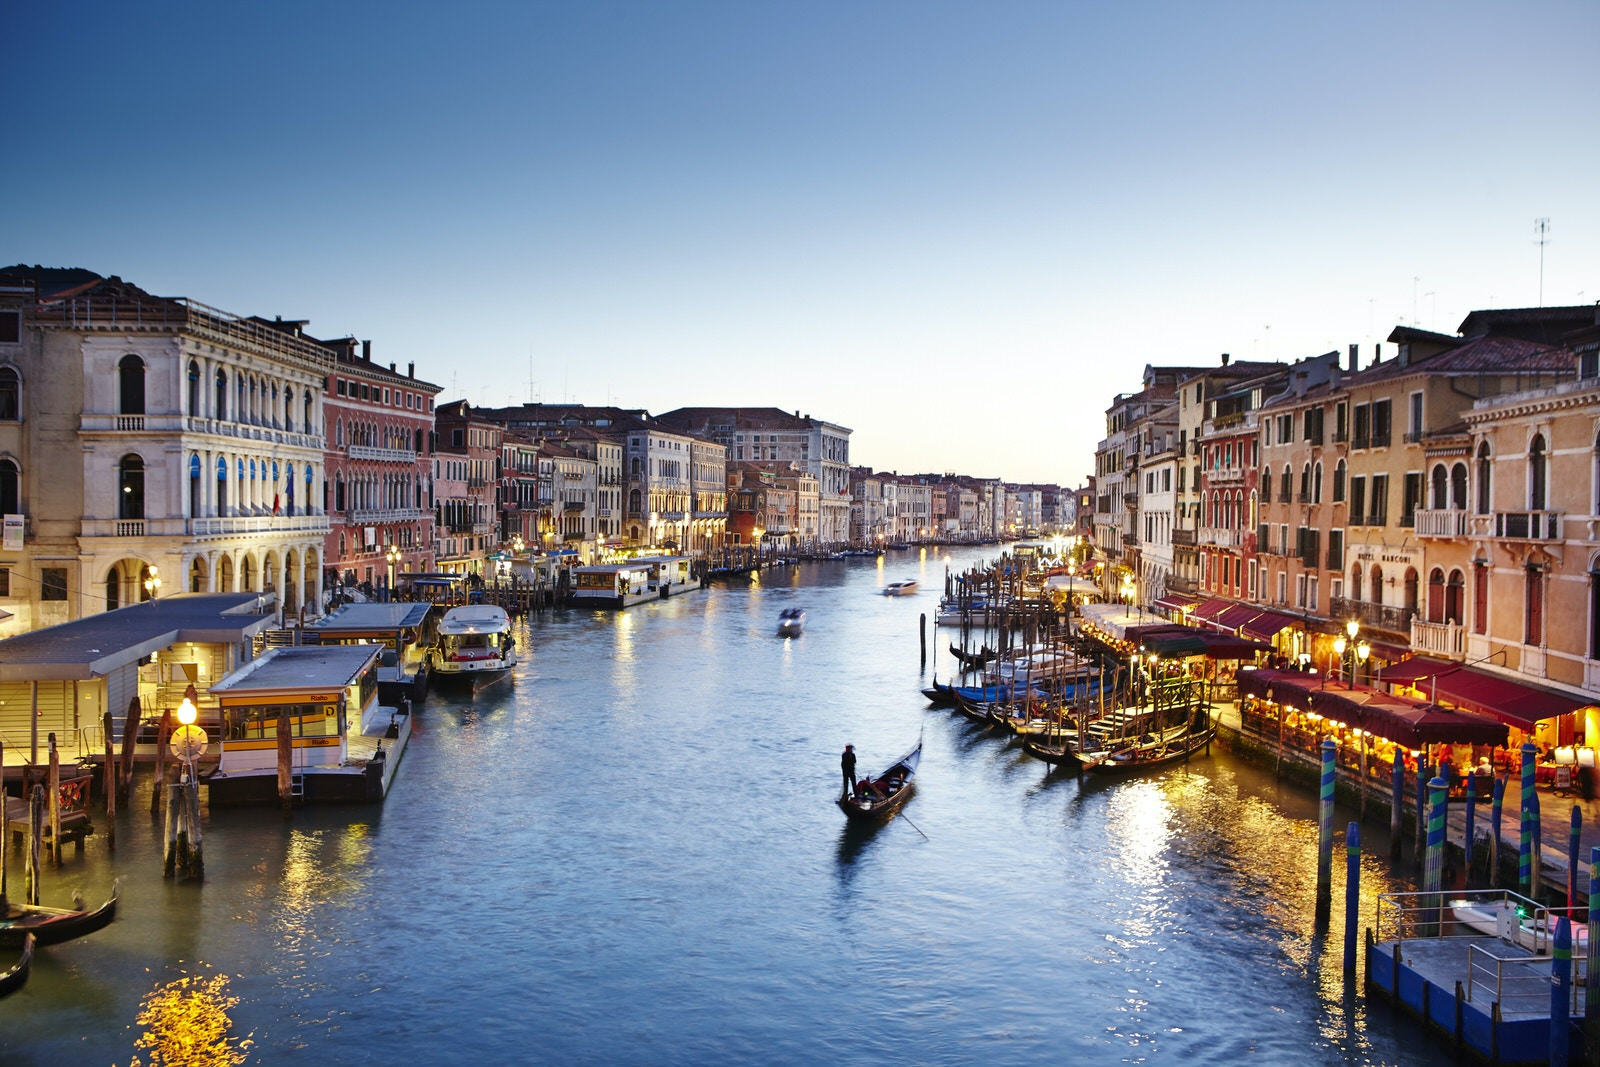 Venice's Grand Canal as seen from the 426-year-old Rialto Bridge © Matt Munro